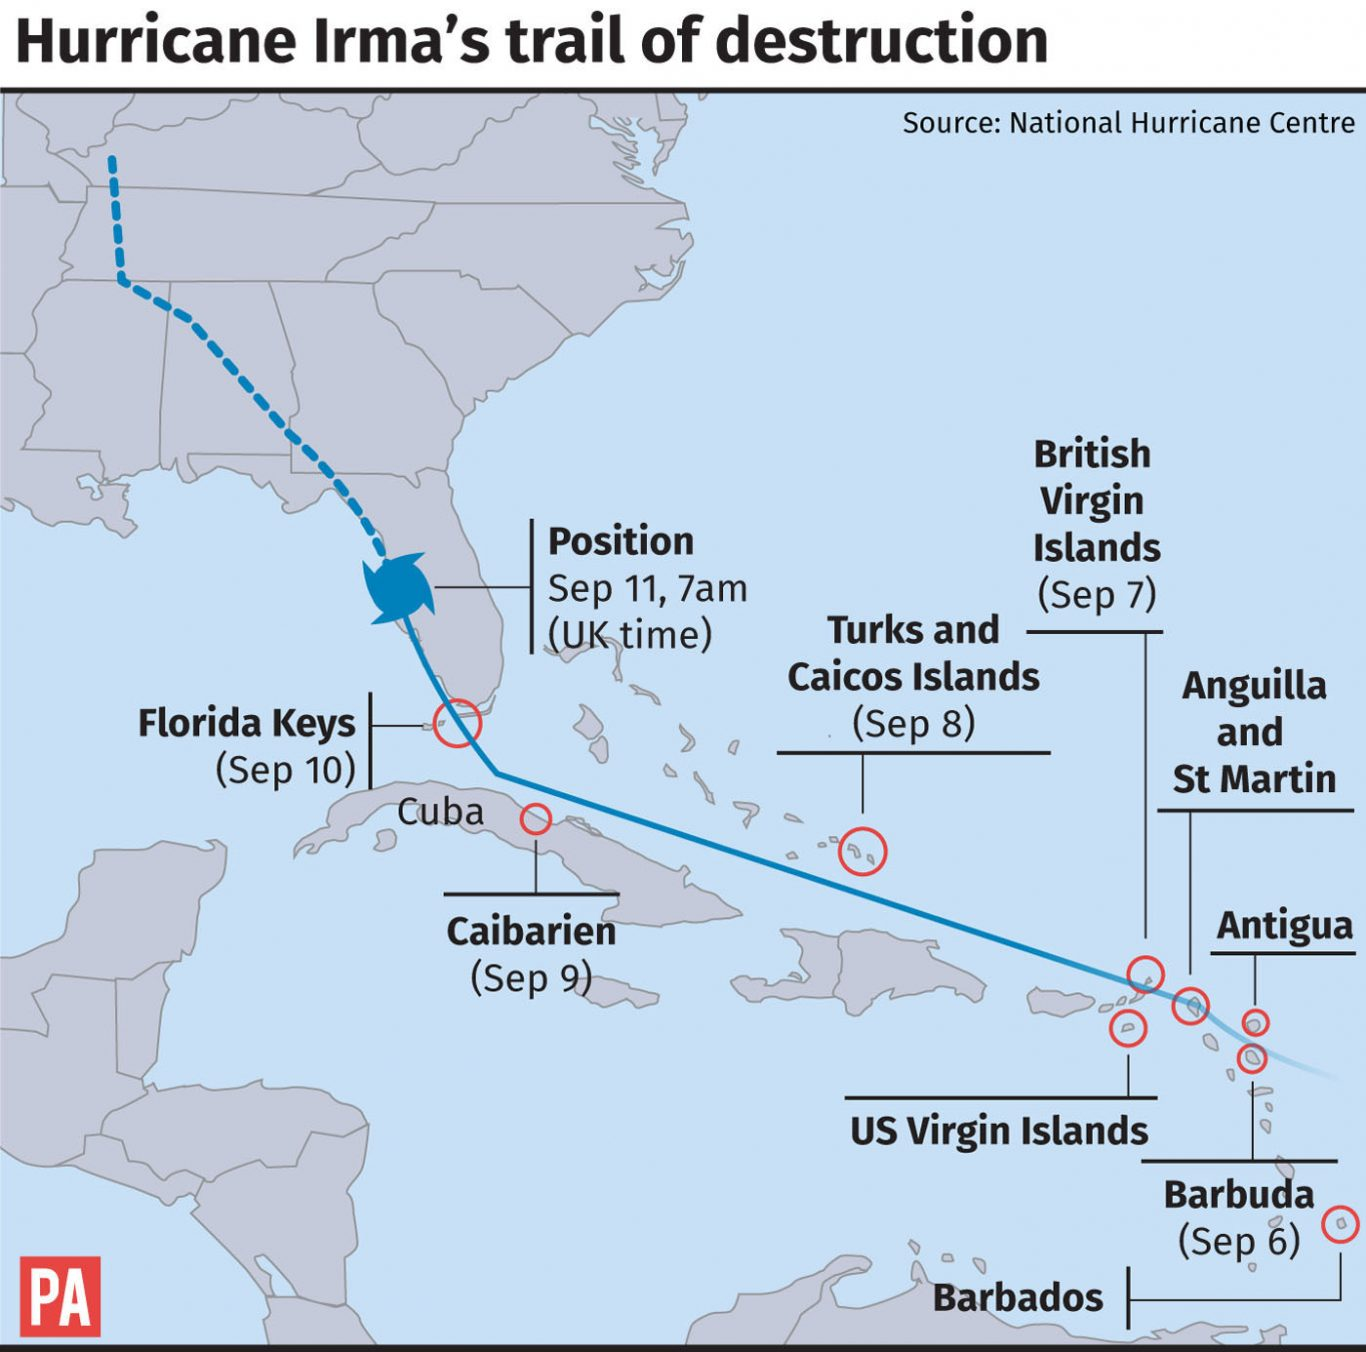 Hurricane Irma What Are The UKs Duties Towards The Caribbean - Mental health needed in us virgin islands on a map